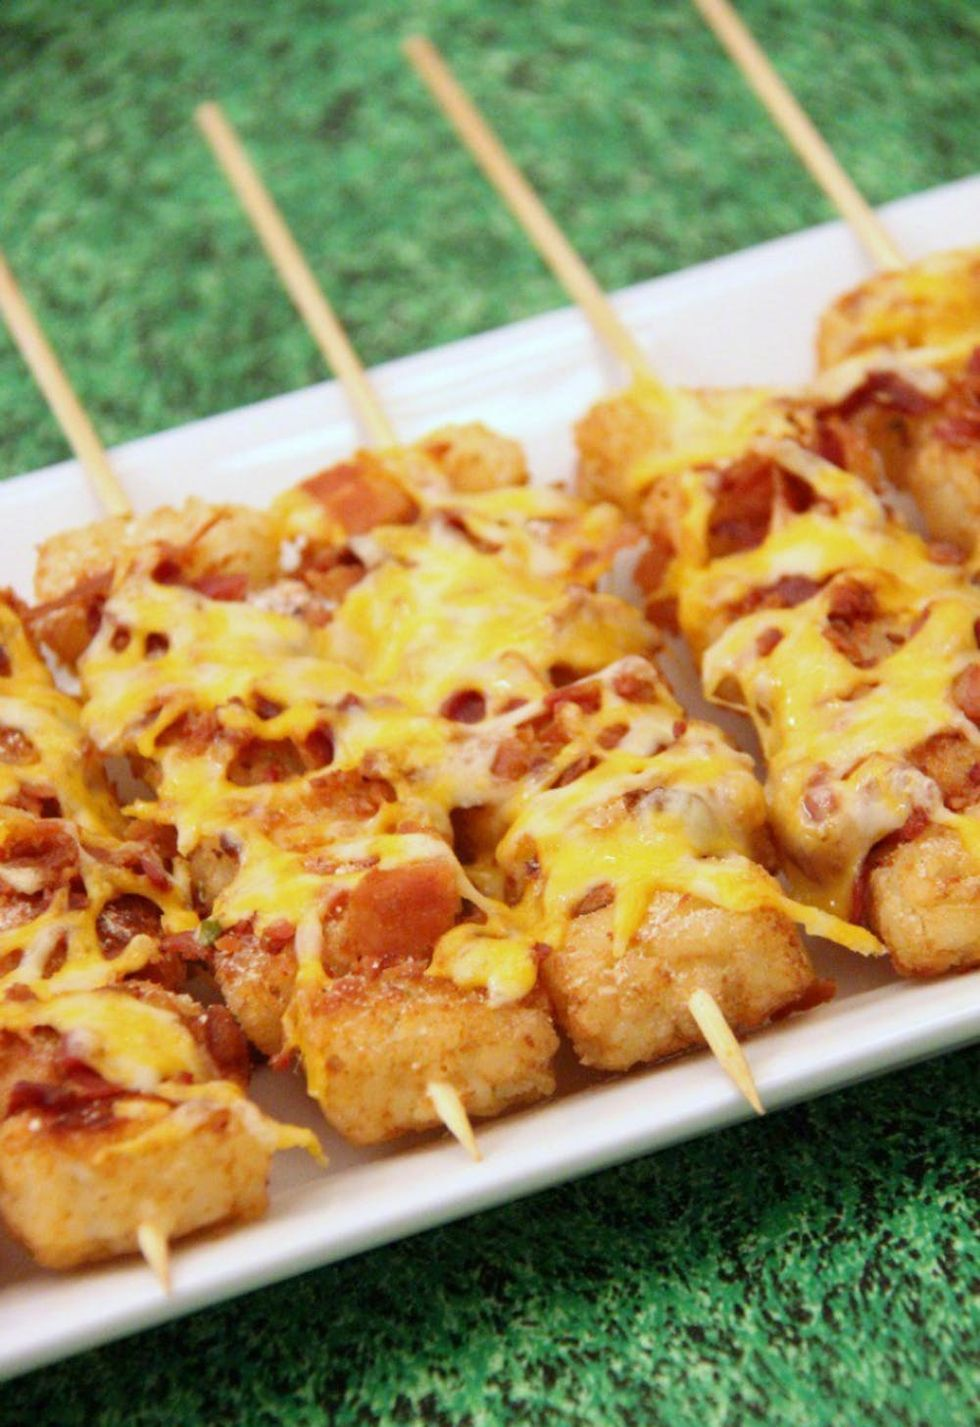 25 Of The Most Delicious Super Bowl Food Ideas According To